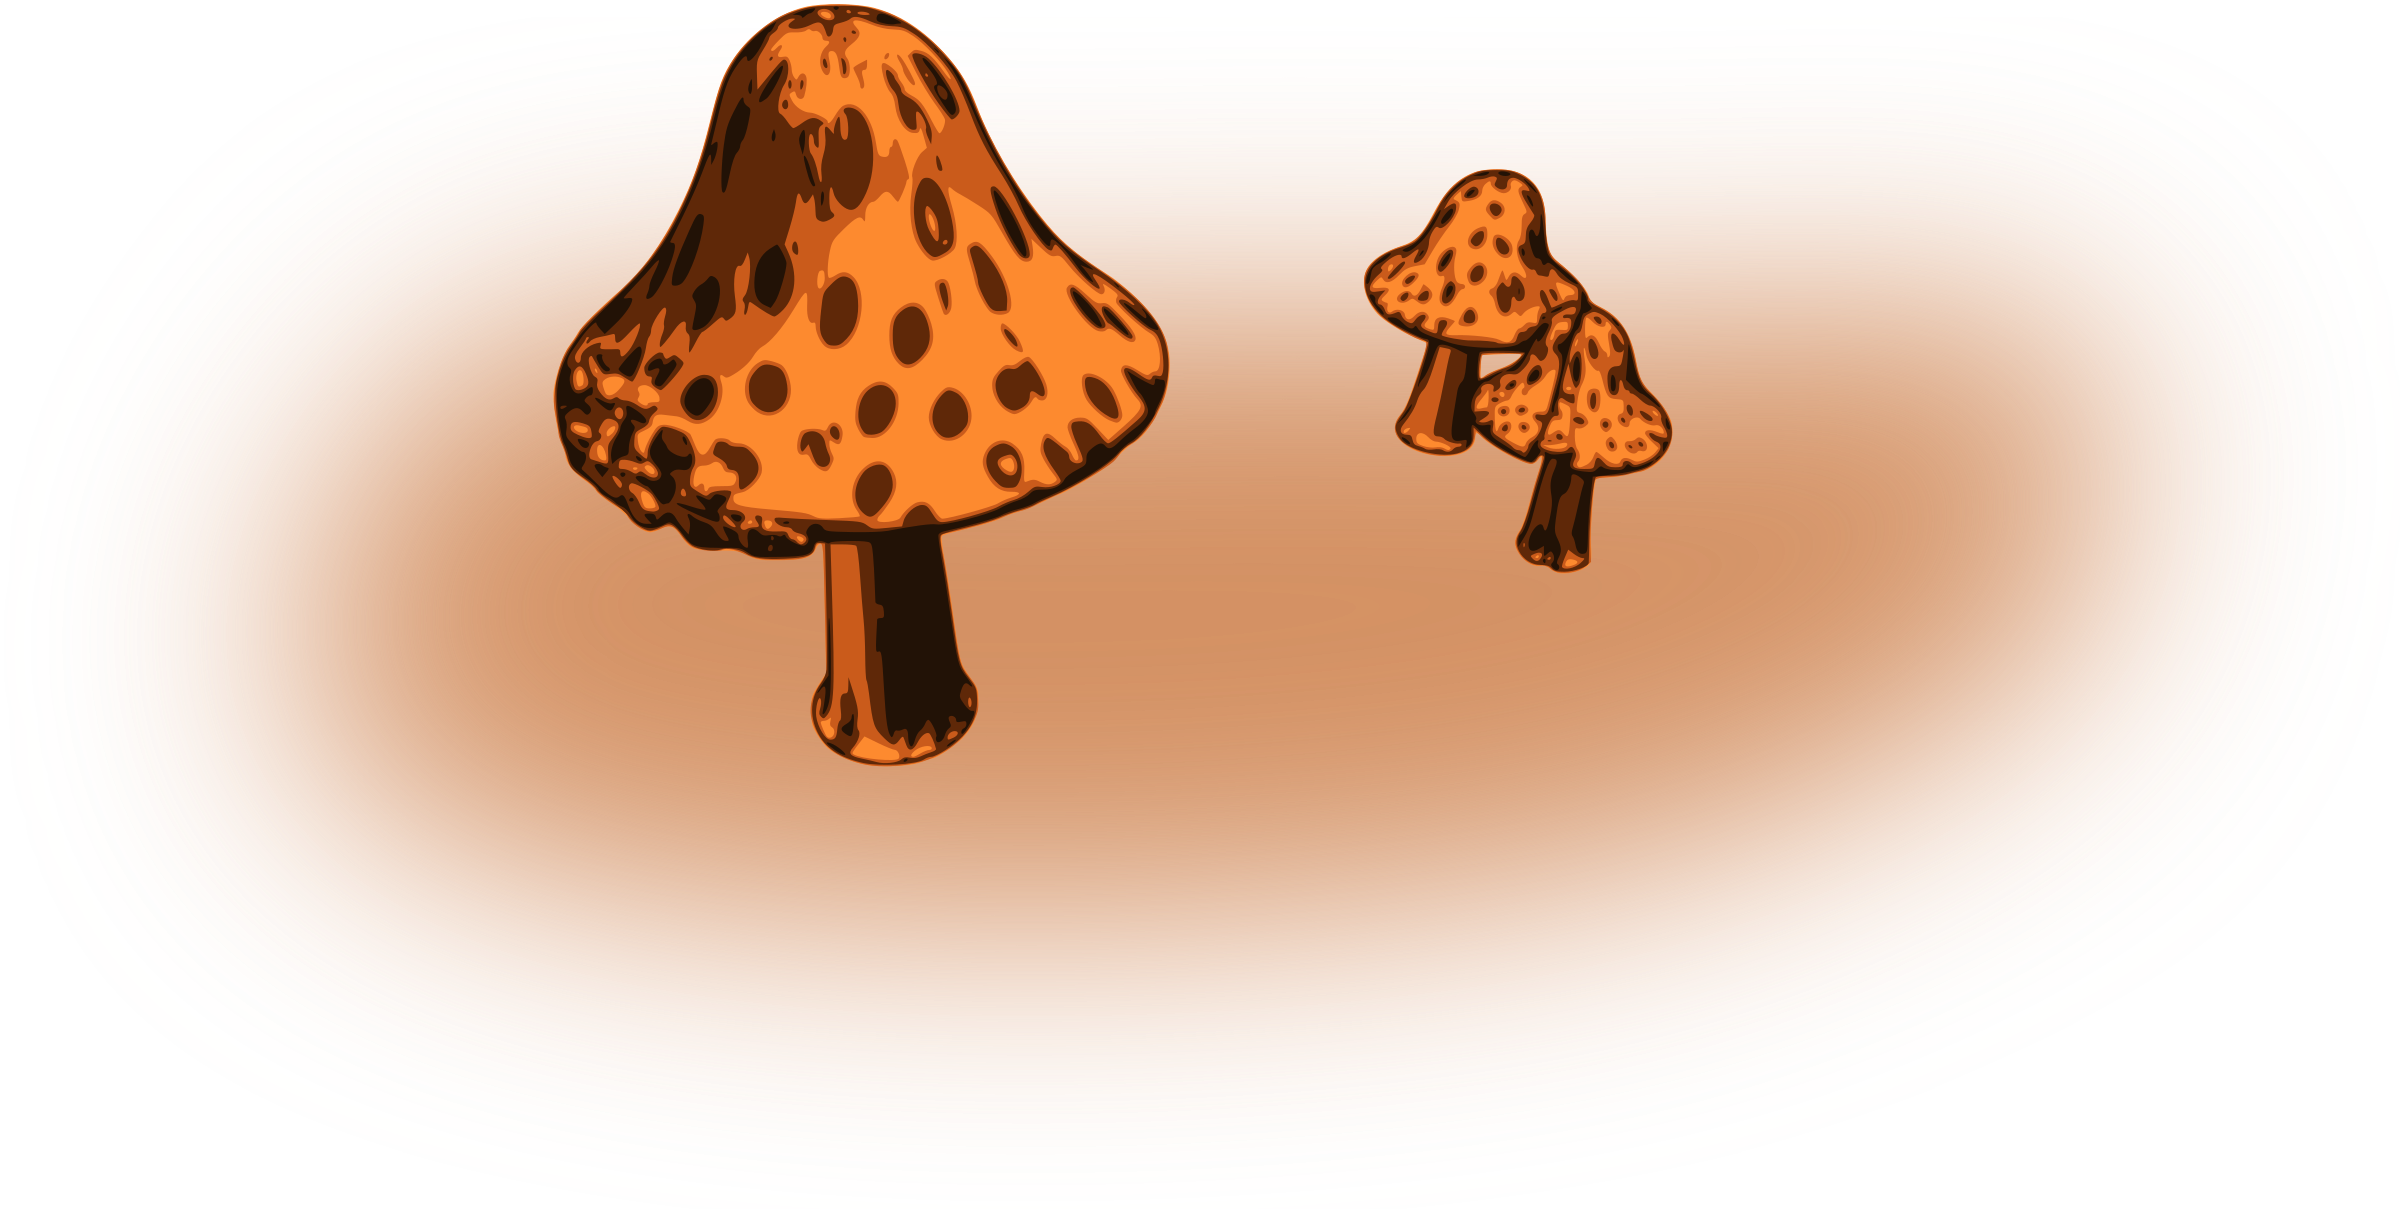 Mushrooms by mazeo